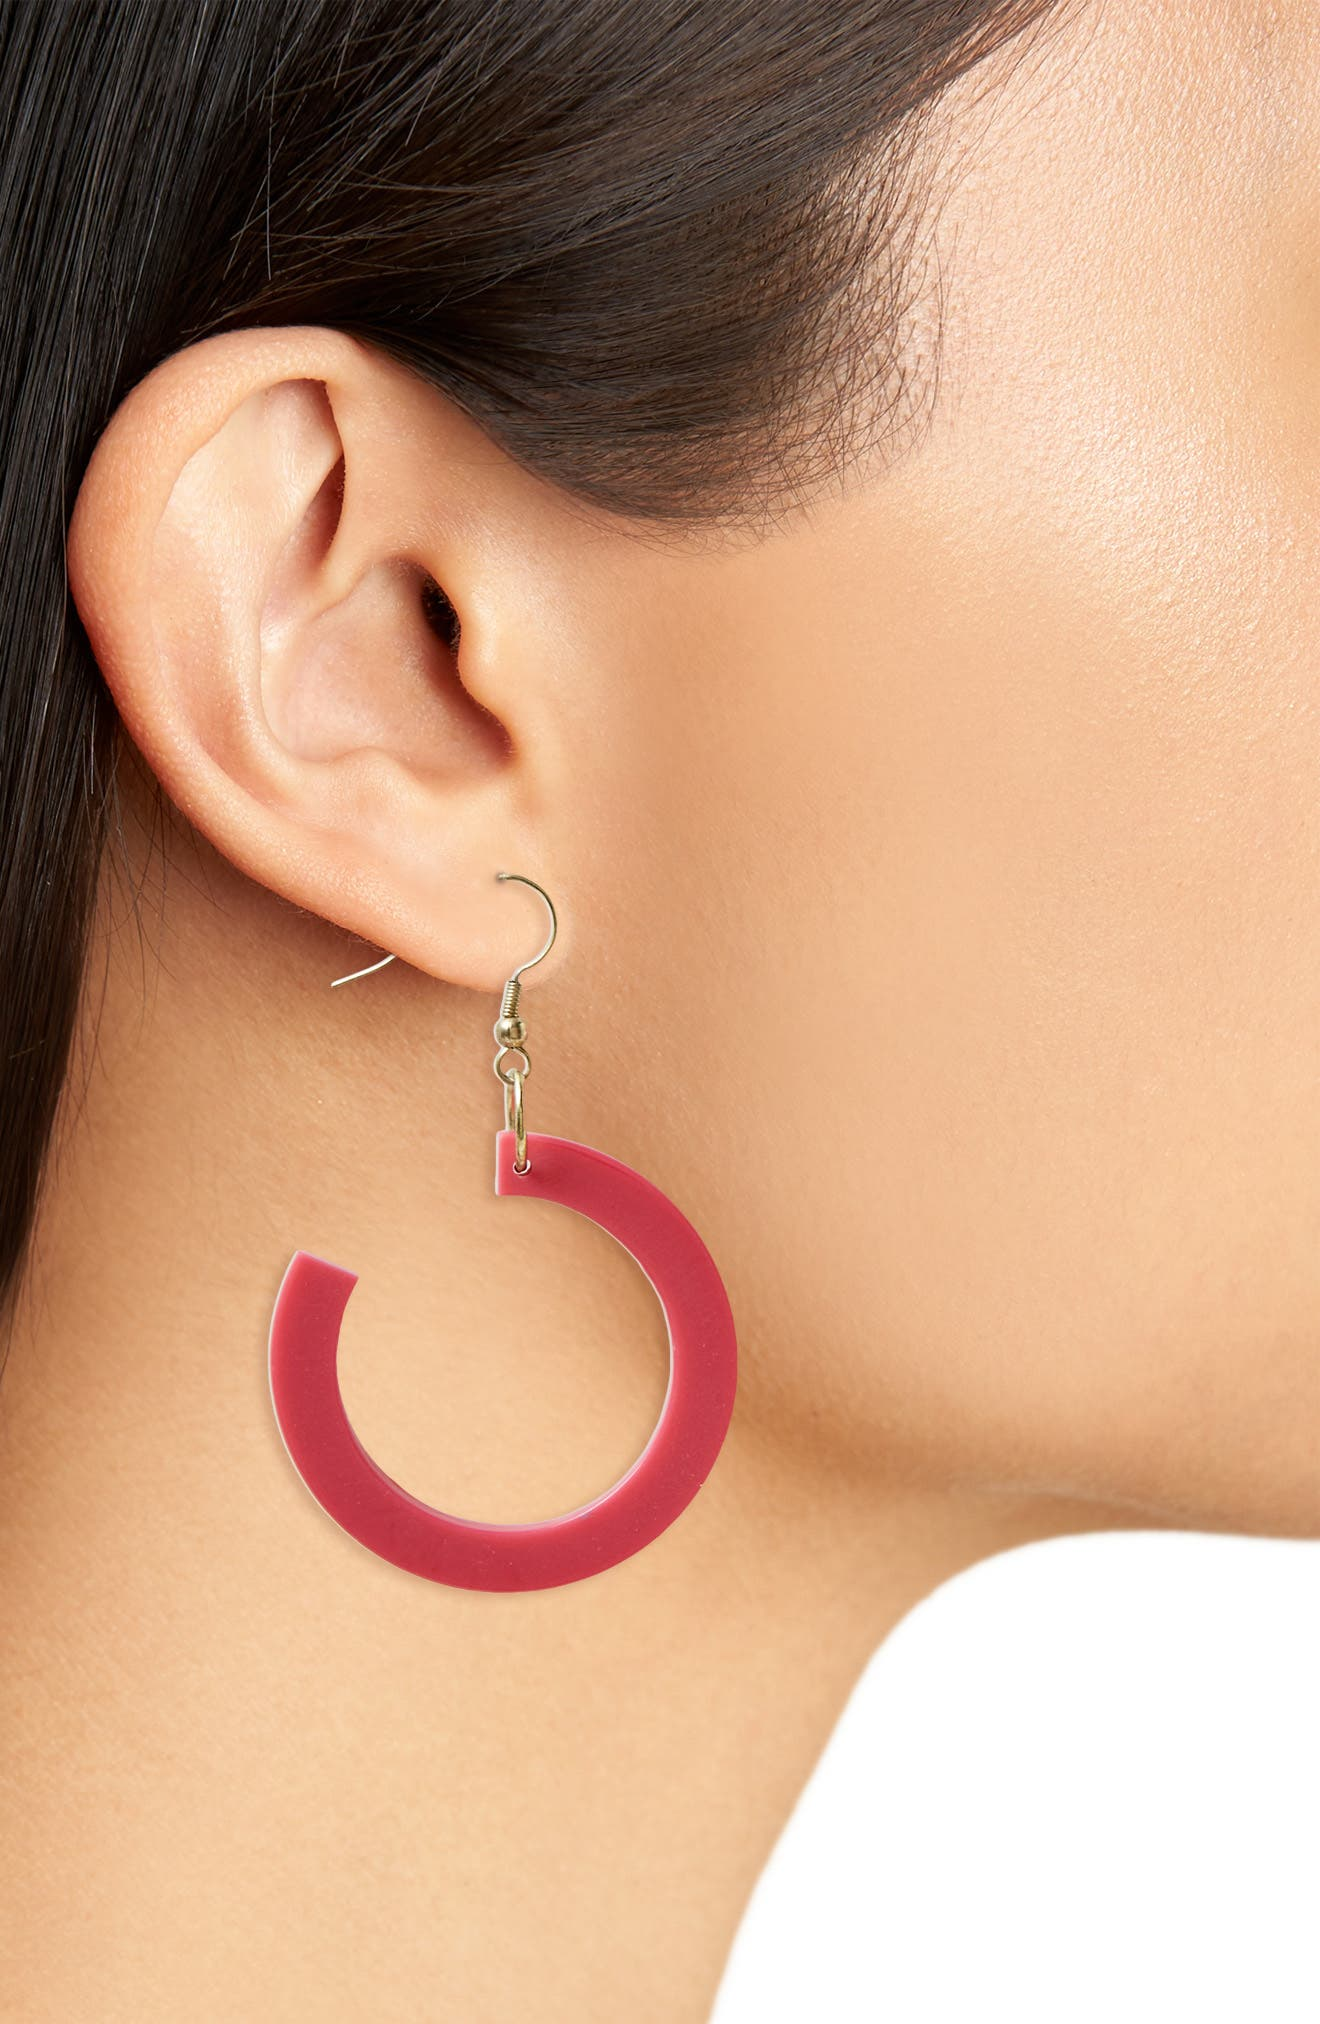 Reef Earrings,                             Alternate thumbnail 2, color,